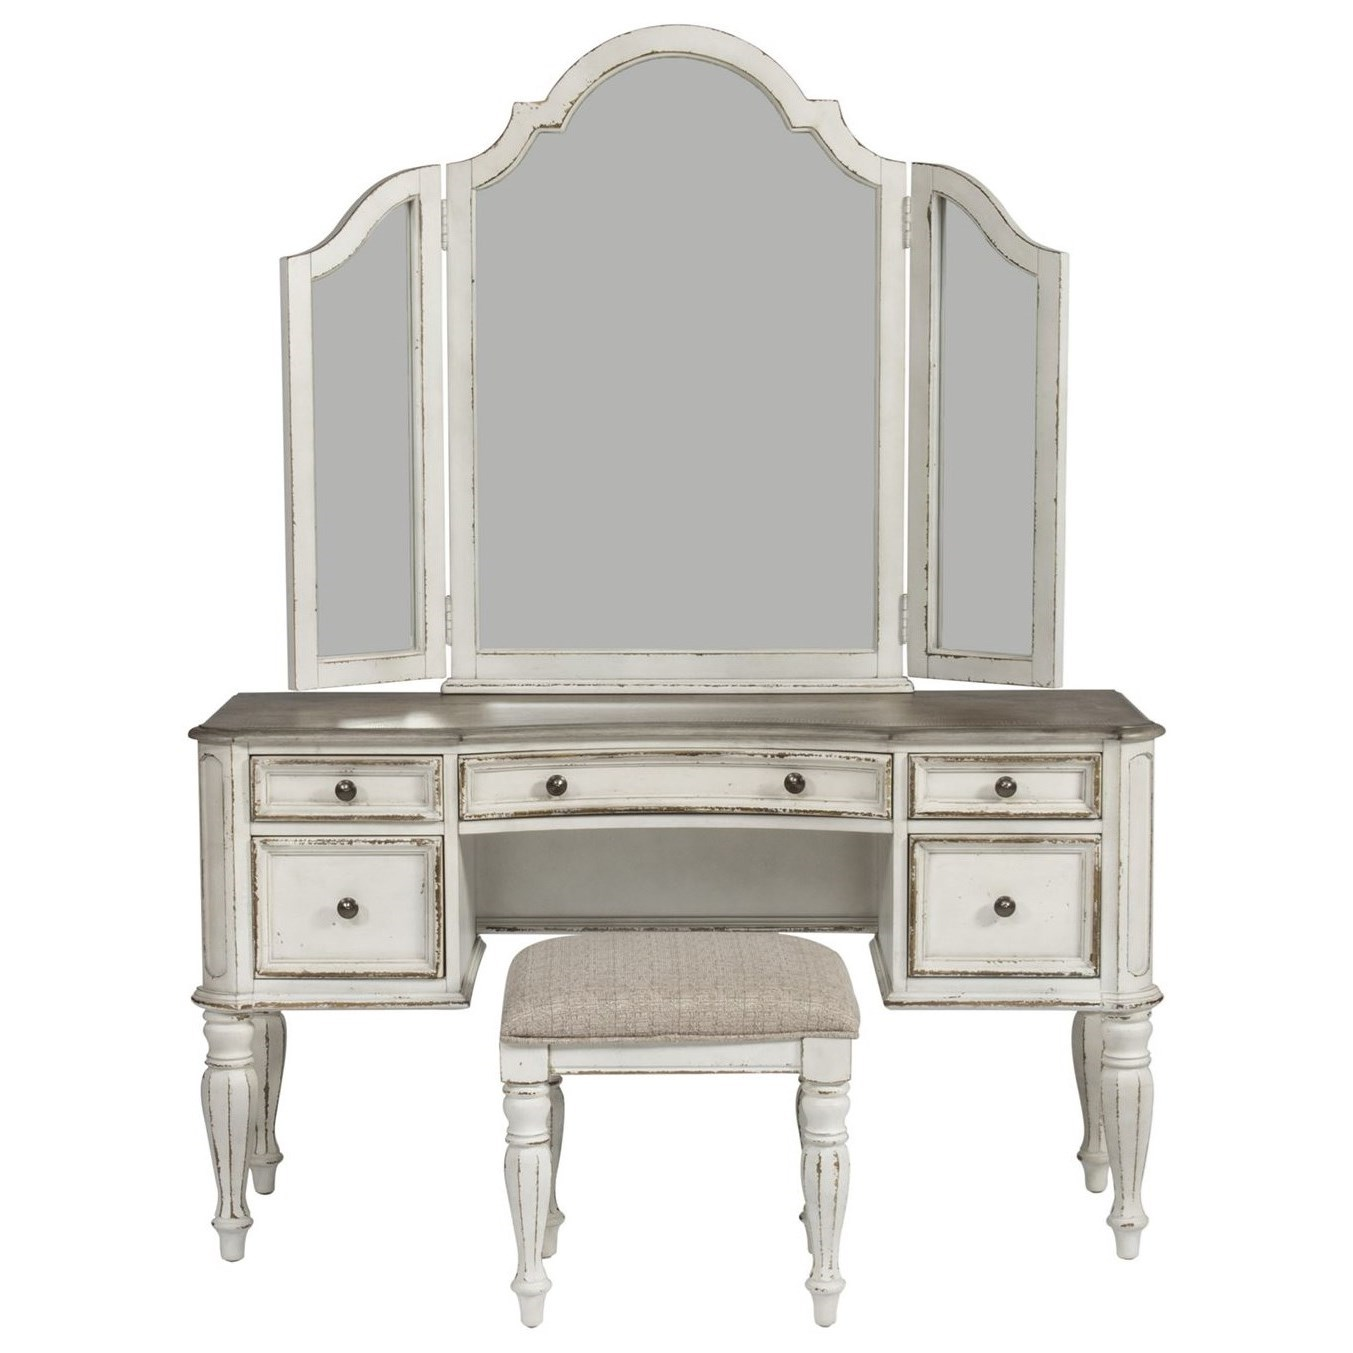 Bedroom Set With Vanity Liberty Furniture Magnolia Manor Bedroom Vanity Set